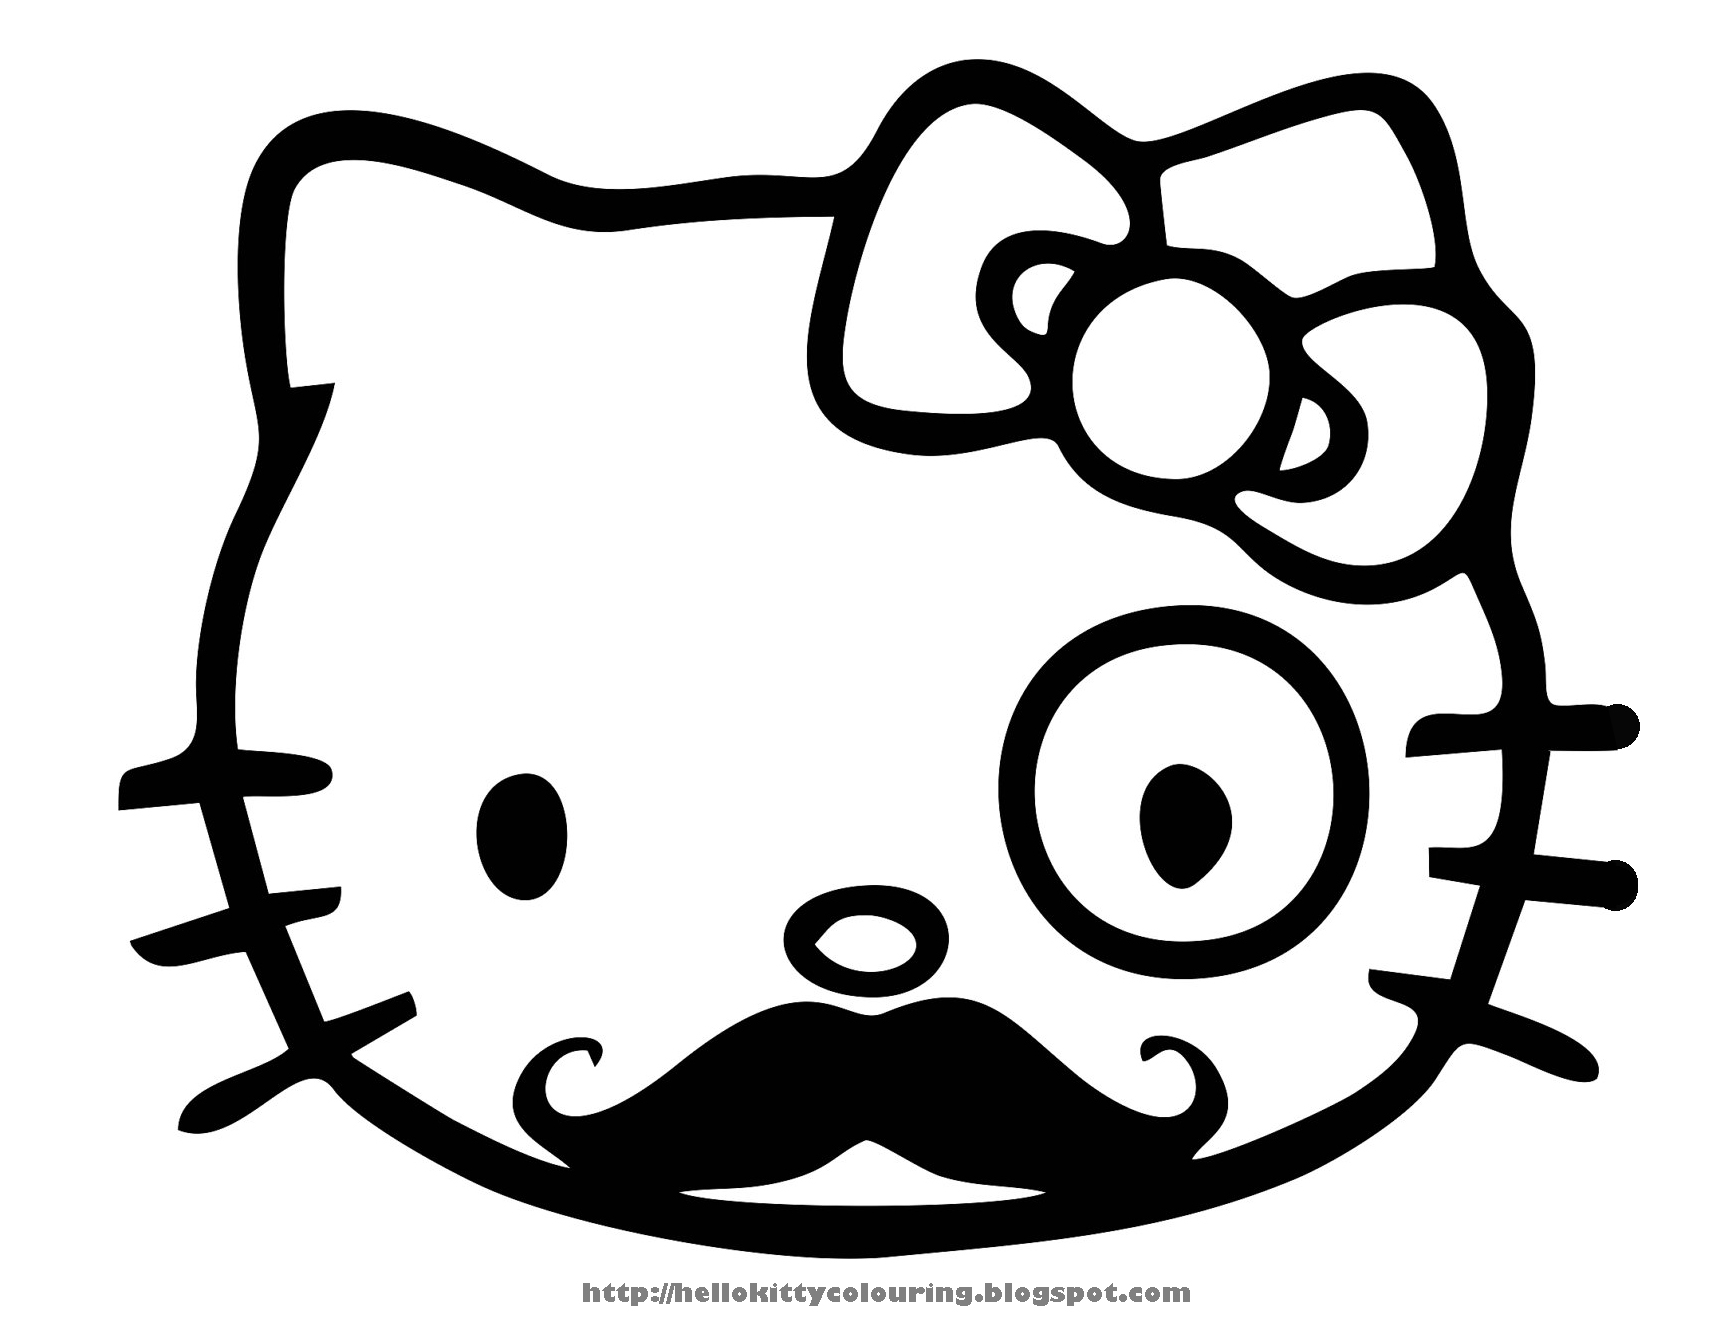 coloring printable hello kitty large hello kitty coloring pages download and print for free printable coloring hello kitty